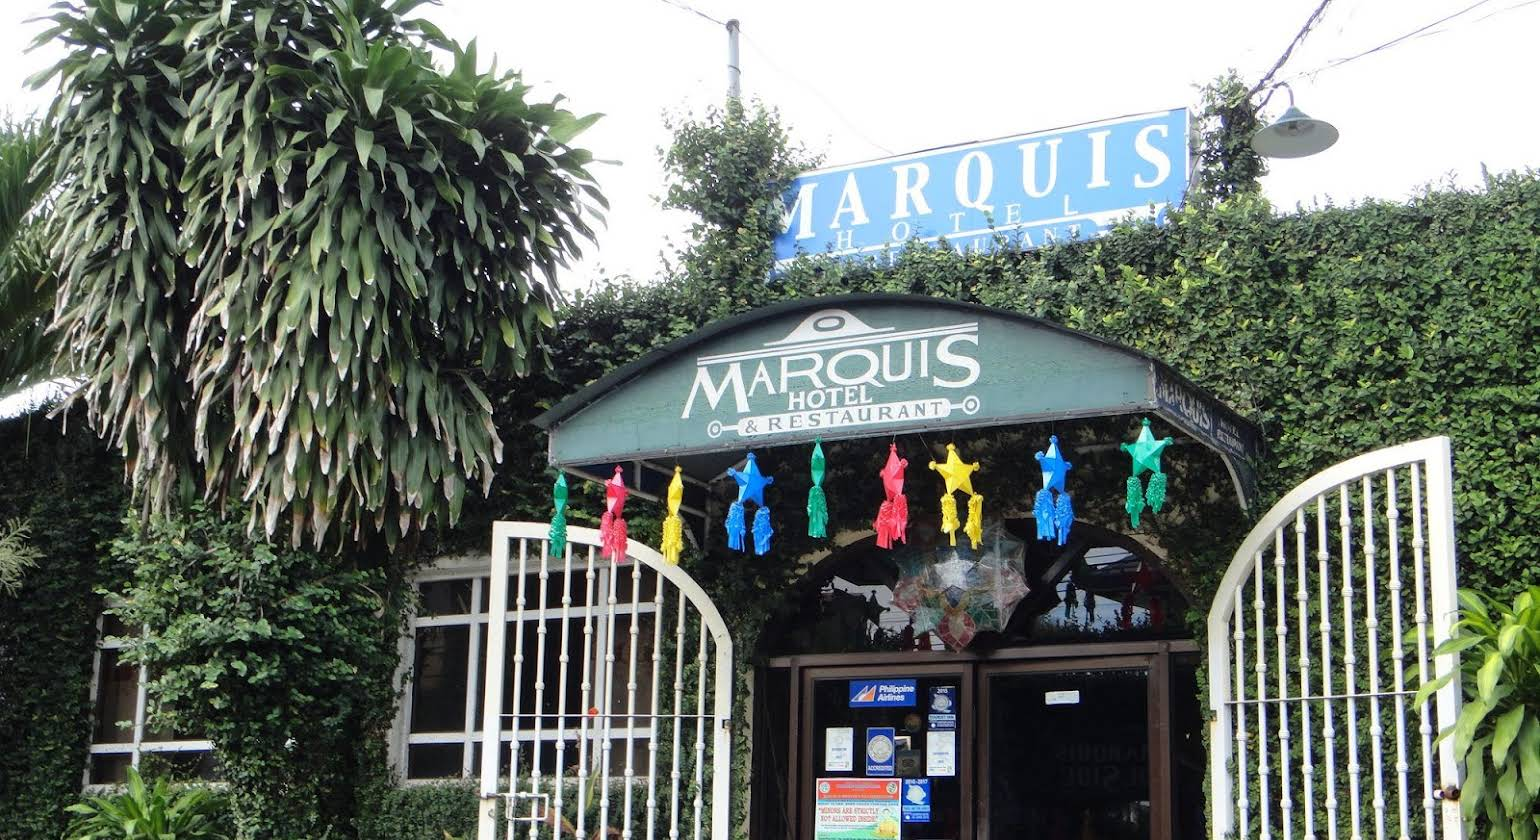 Marquis Hotel and Restaurant